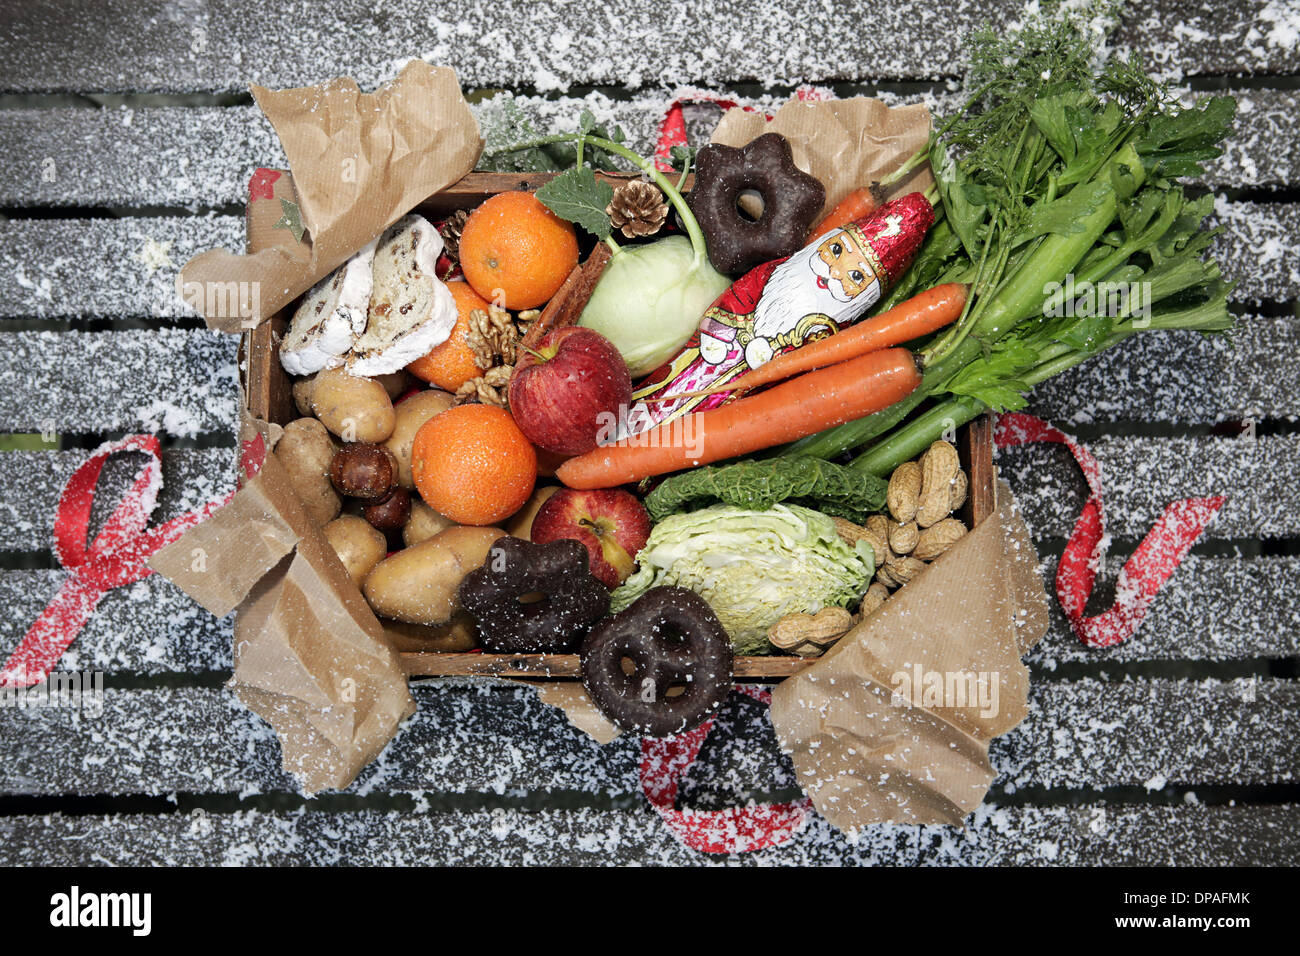 Unwrapped box of savoury and sweet christmas food - Stock Image